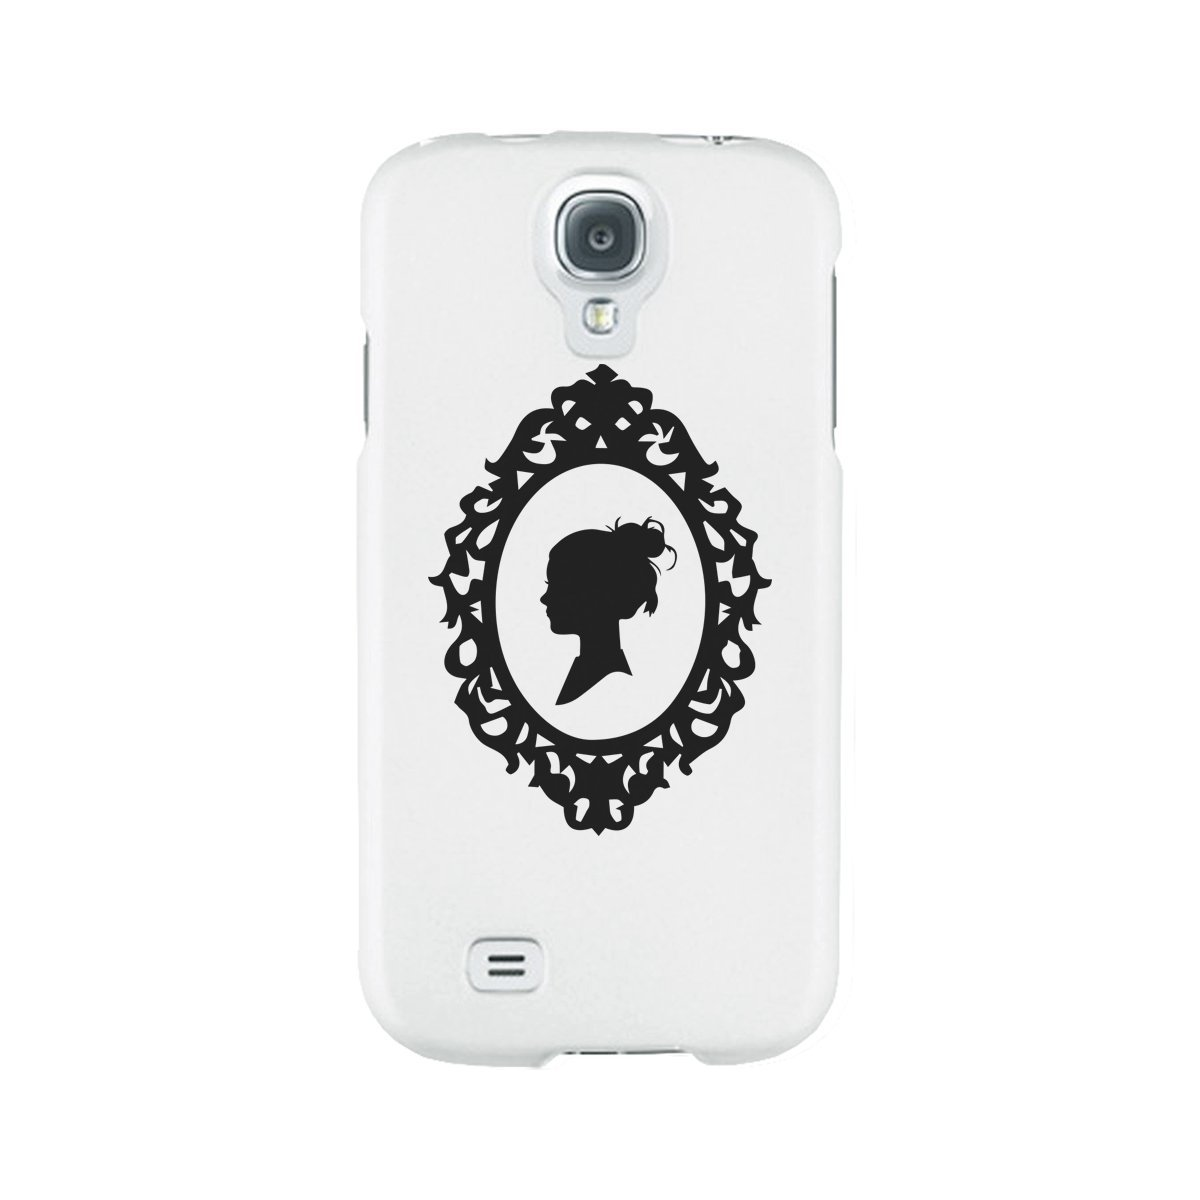 amazon iphone 5c cameo silhouette vintage phone for iphone 10063